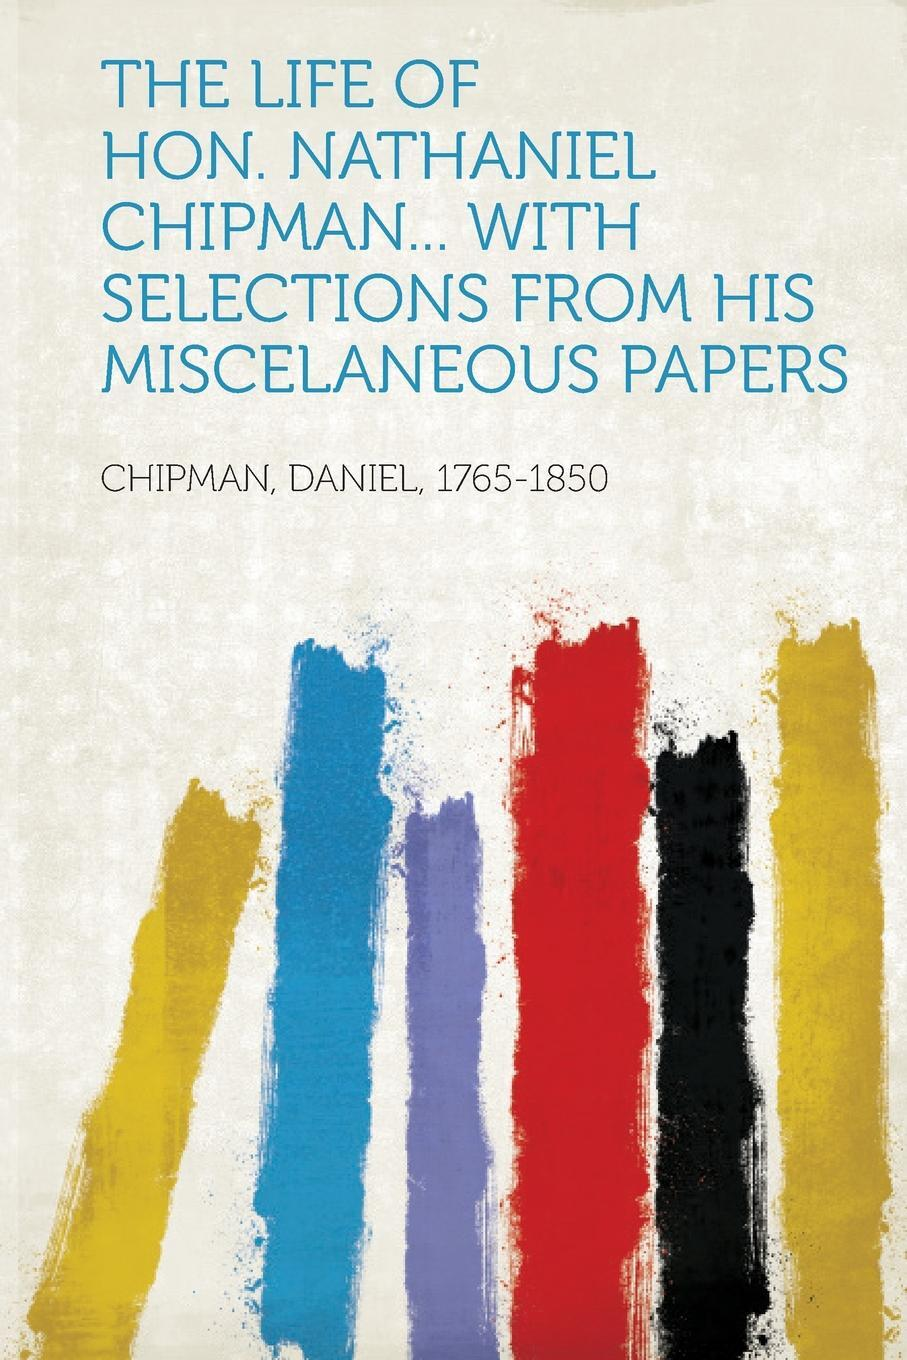 Chipman Daniel 1765-1850. The Life of Hon. Nathaniel Chipman... With Selections from His Miscelaneous Papers